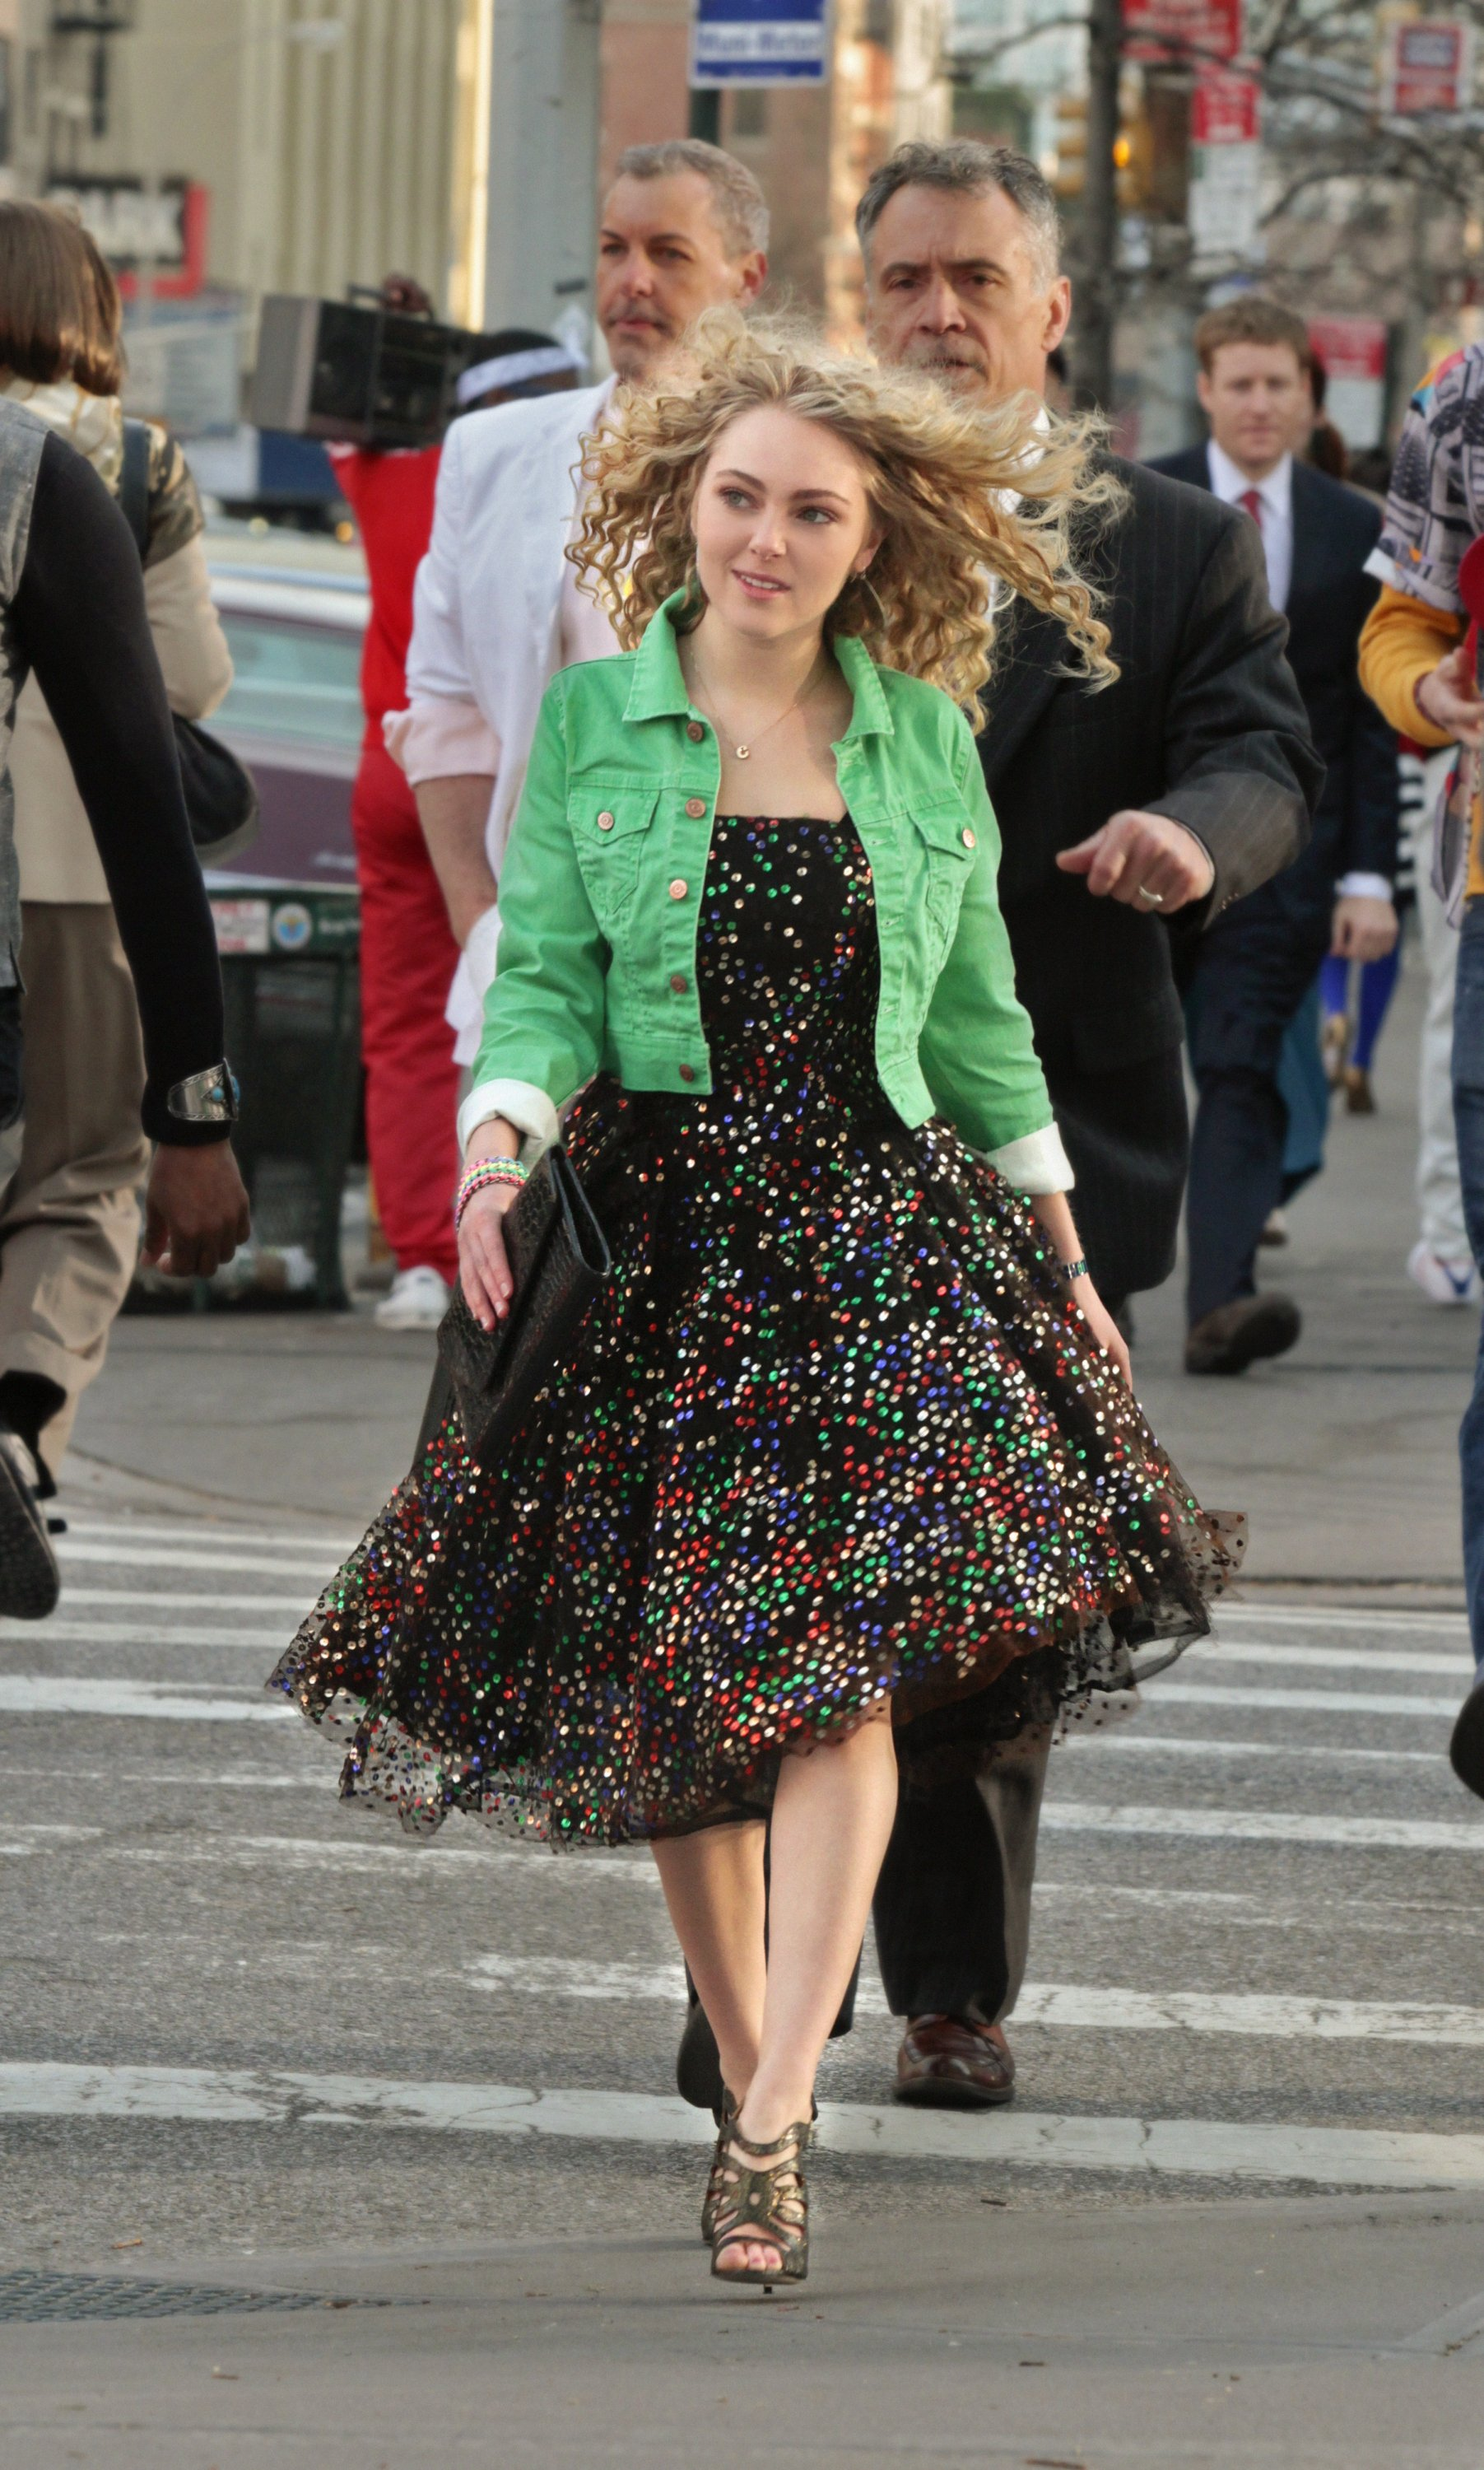 'The Carrie Diaries' vs. 'Sex and the City': Dare to compare